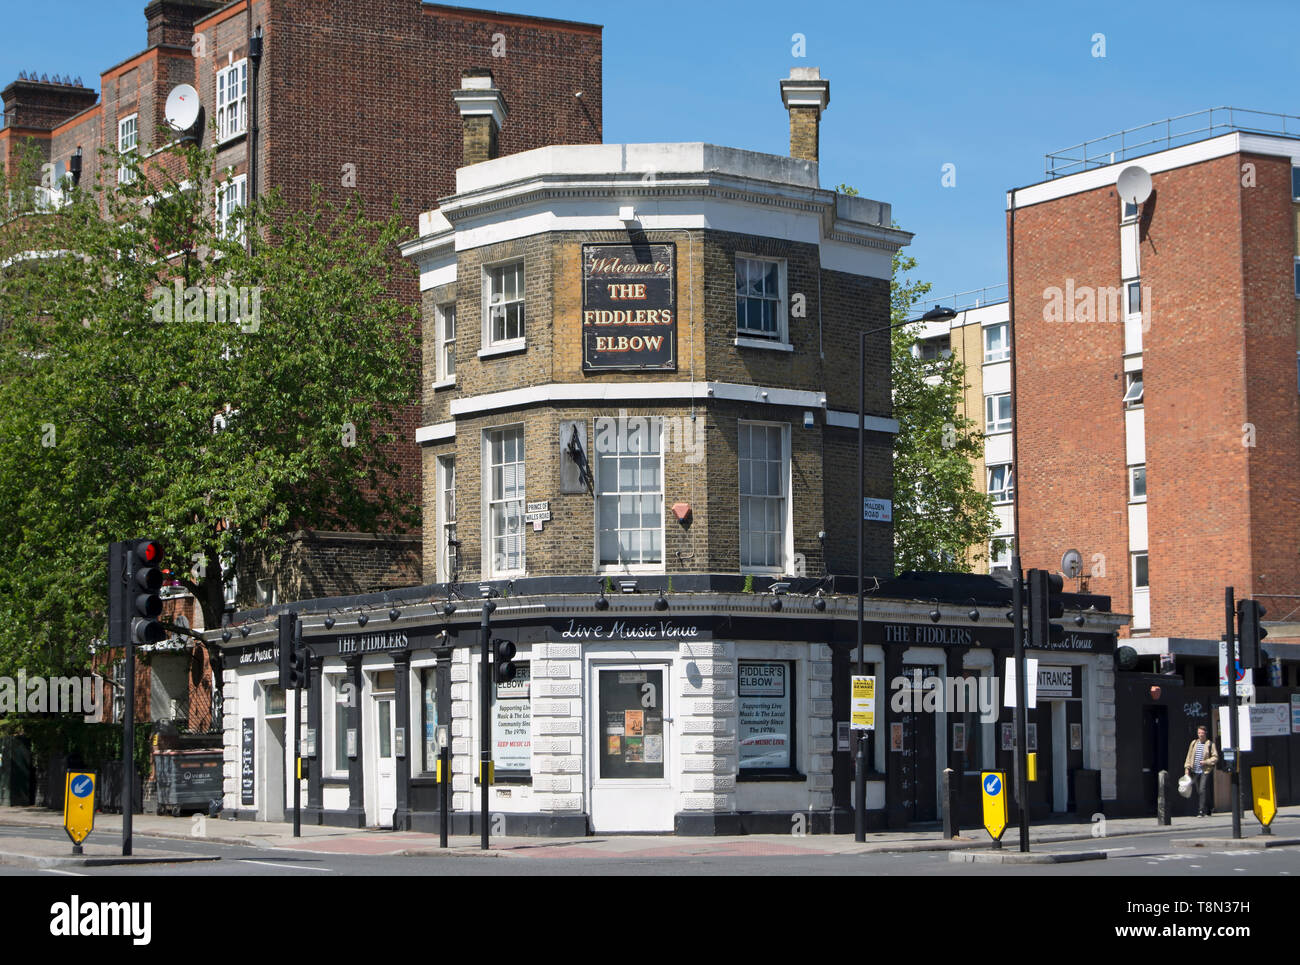 exterior of the fiddler's elbow, a former pub functioning as a live music venue in belsize park, london, england - Stock Image